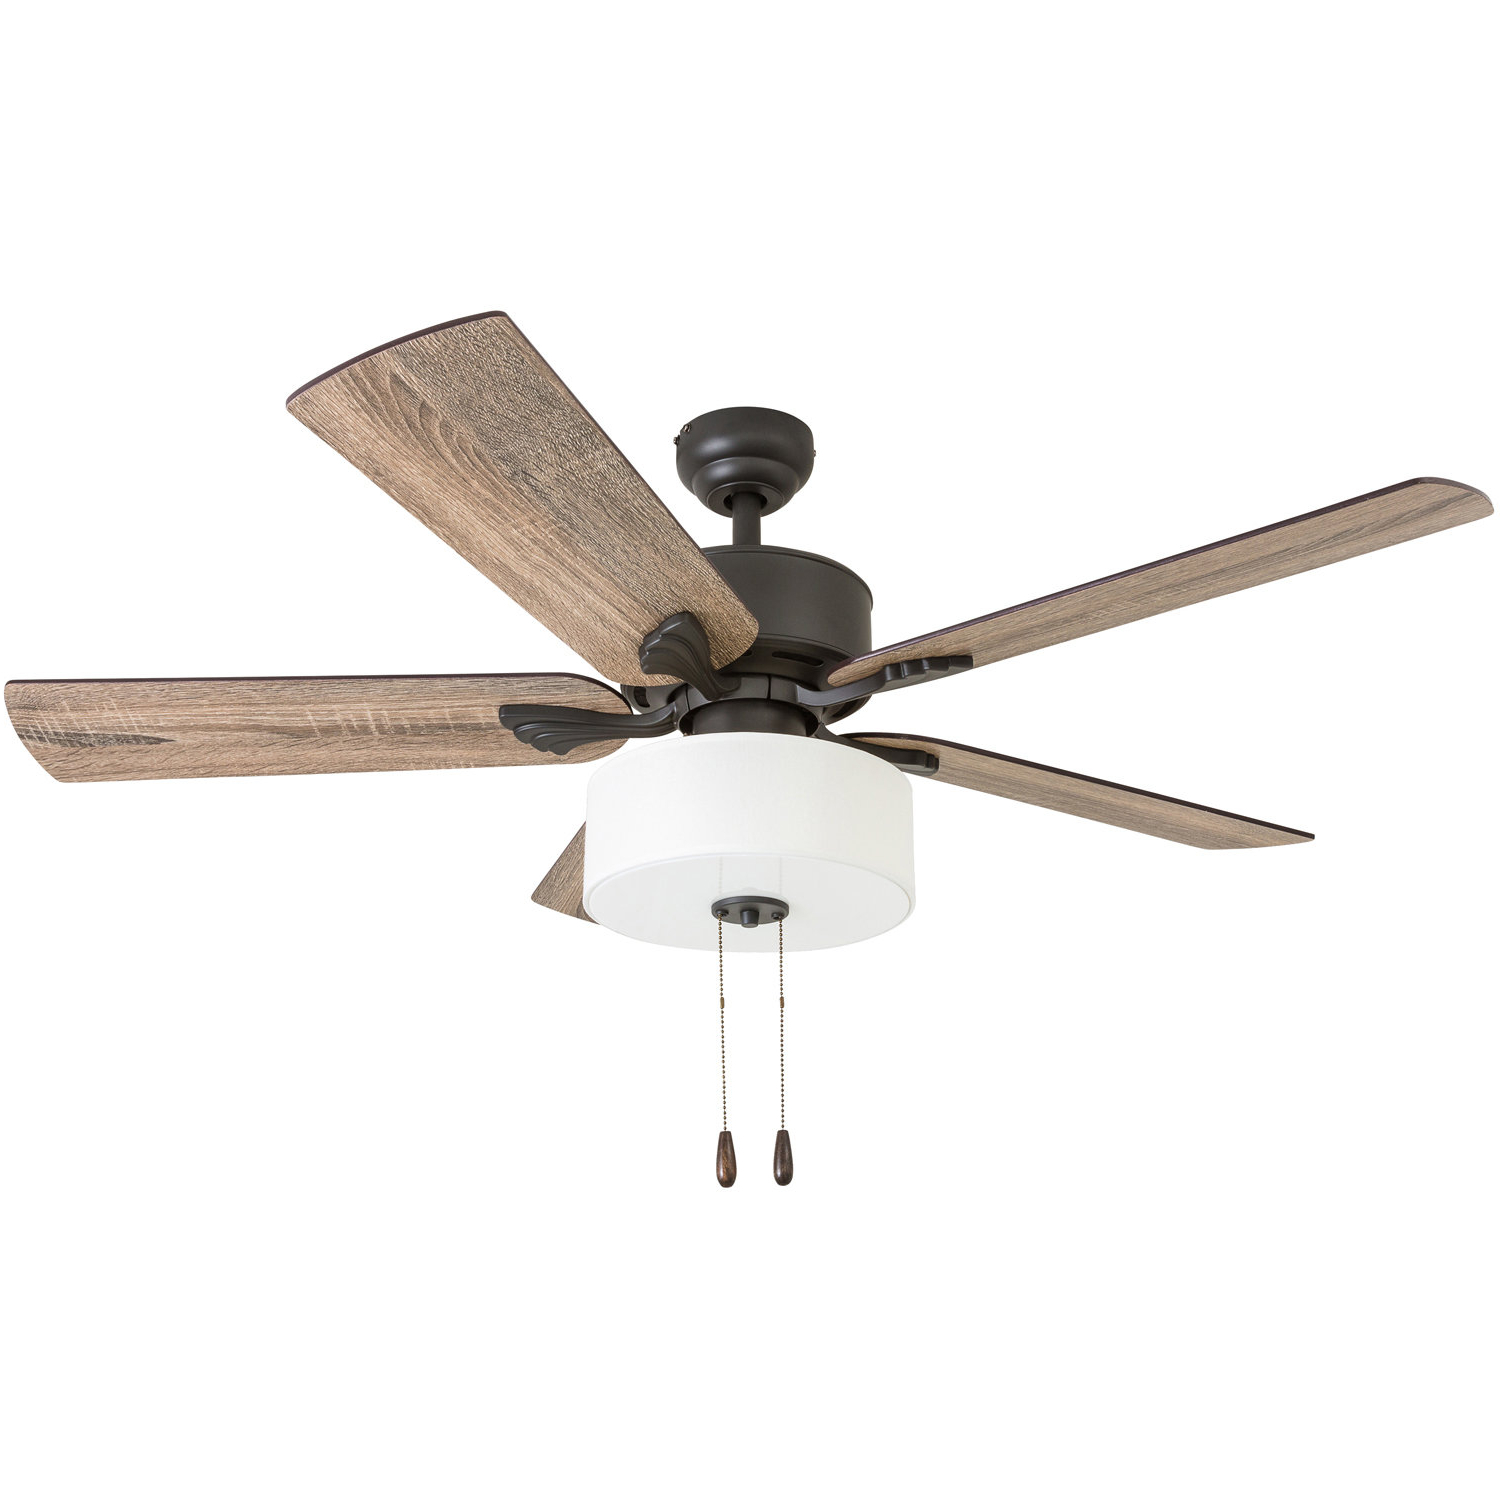 "Wilburton 5 Blade Ceiling Fans With Remote In Well Known 52"" Pannell 5 Blade Led Ceiling Fan & Reviews (View 15 of 20)"